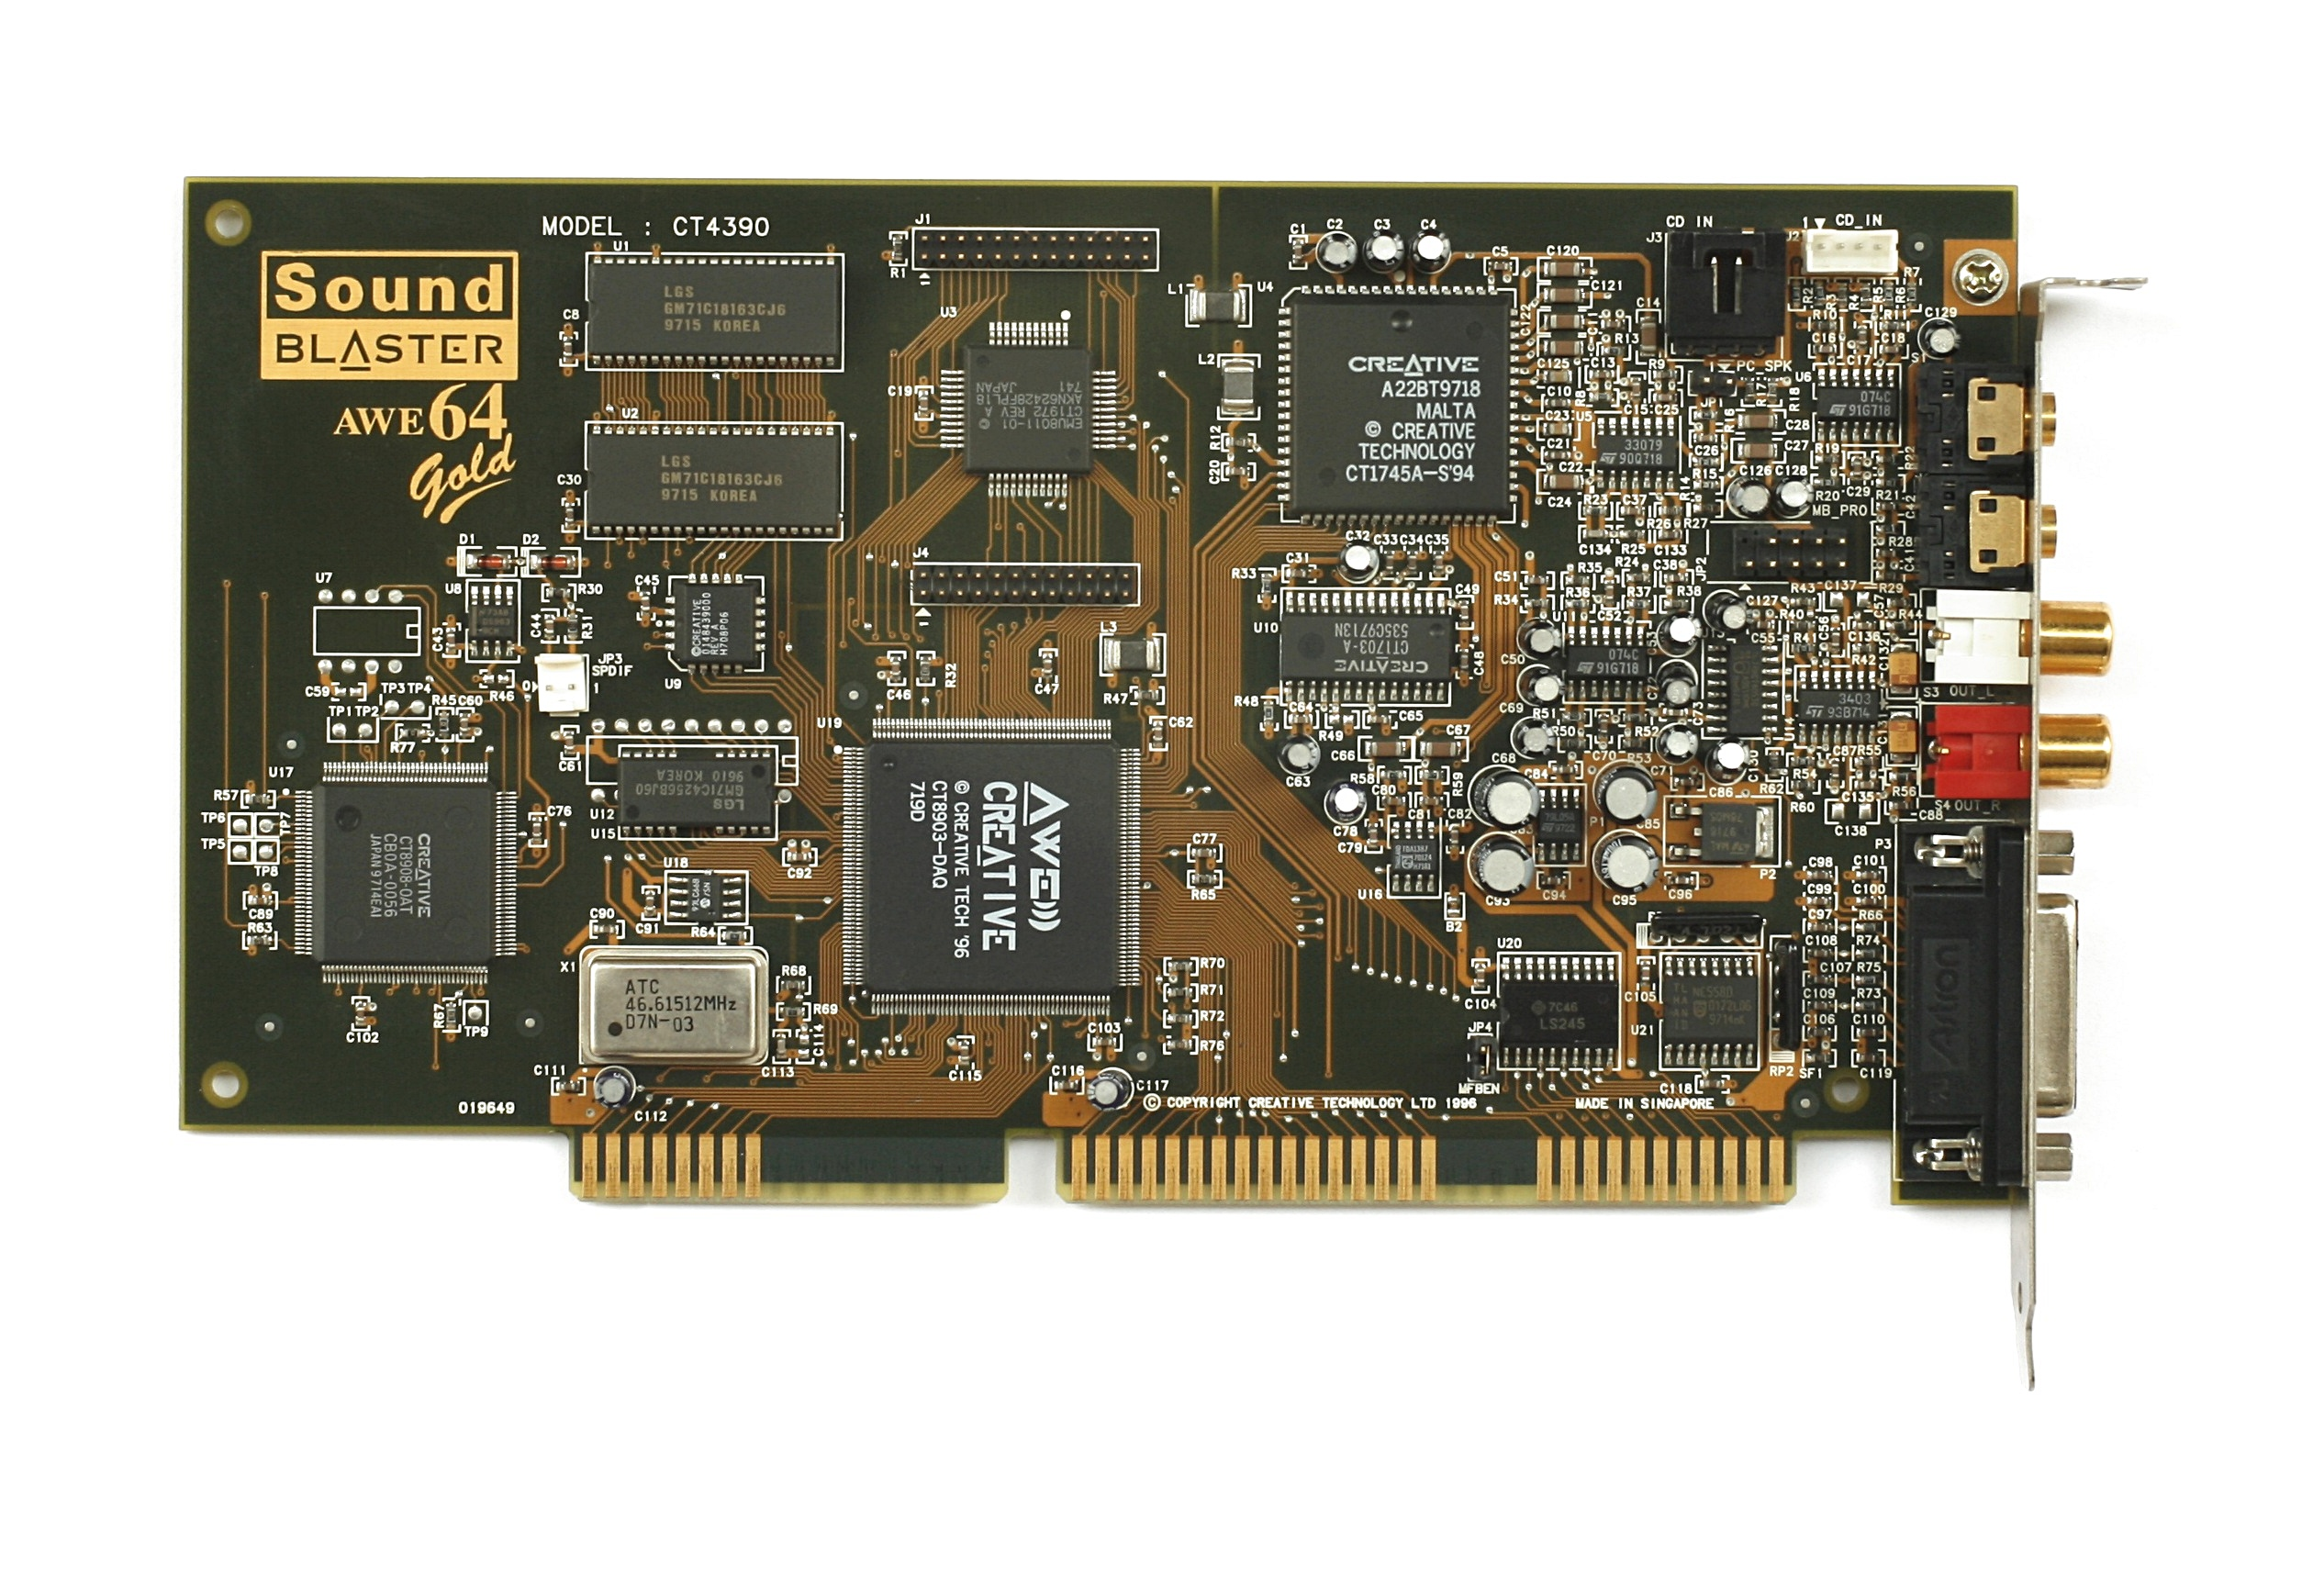 KL_Creative_Labs_Soundblaster_AWE64_Gold